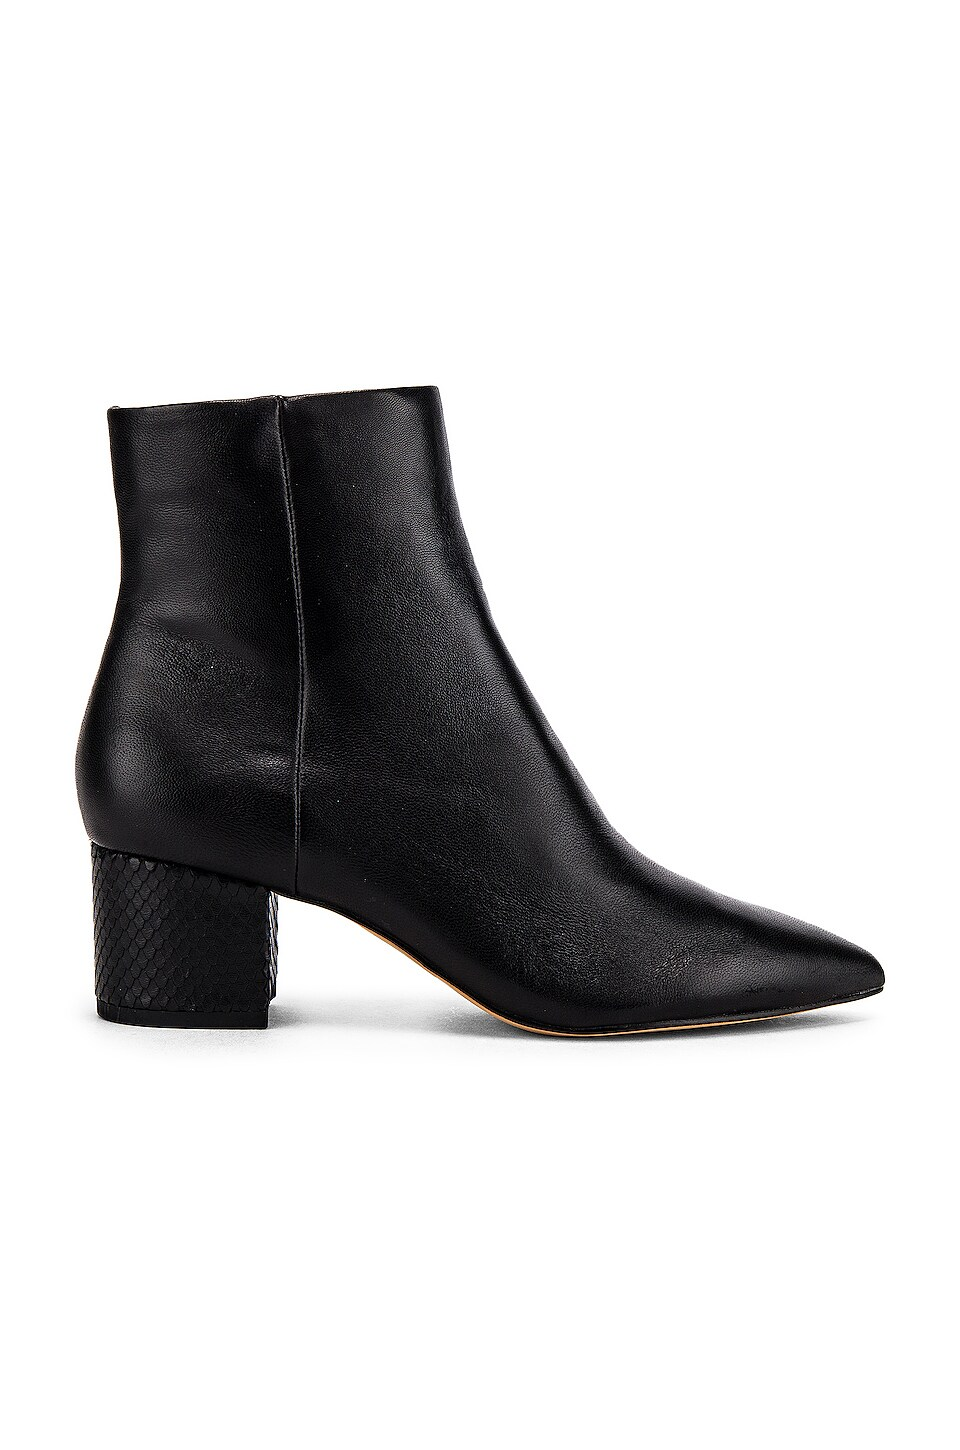 Dolce Vita Bel Bootie in Onyx Leather